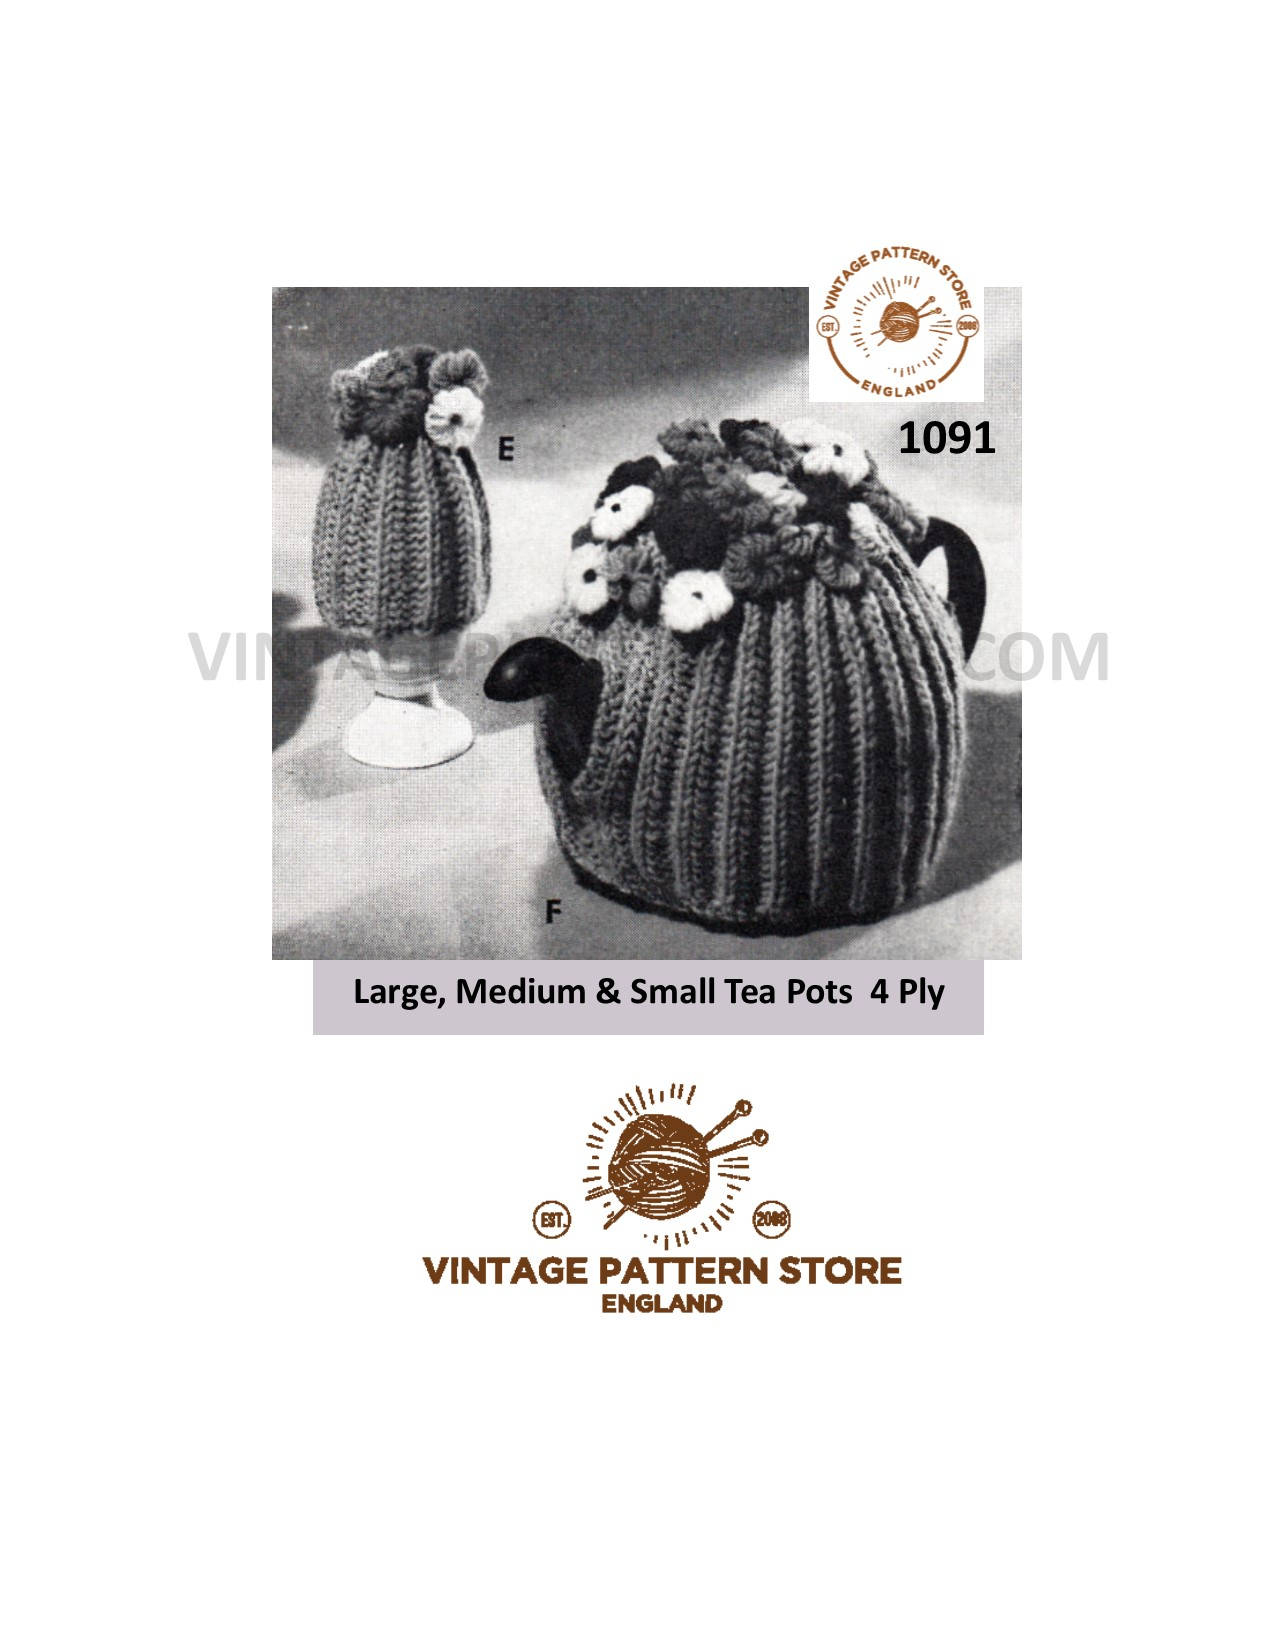 Tea Cosy Knitting Patterns Easy 50s Easy To Knit Tea Cosy Knitting Pattern 4 Ply Ribbed Floral Tea